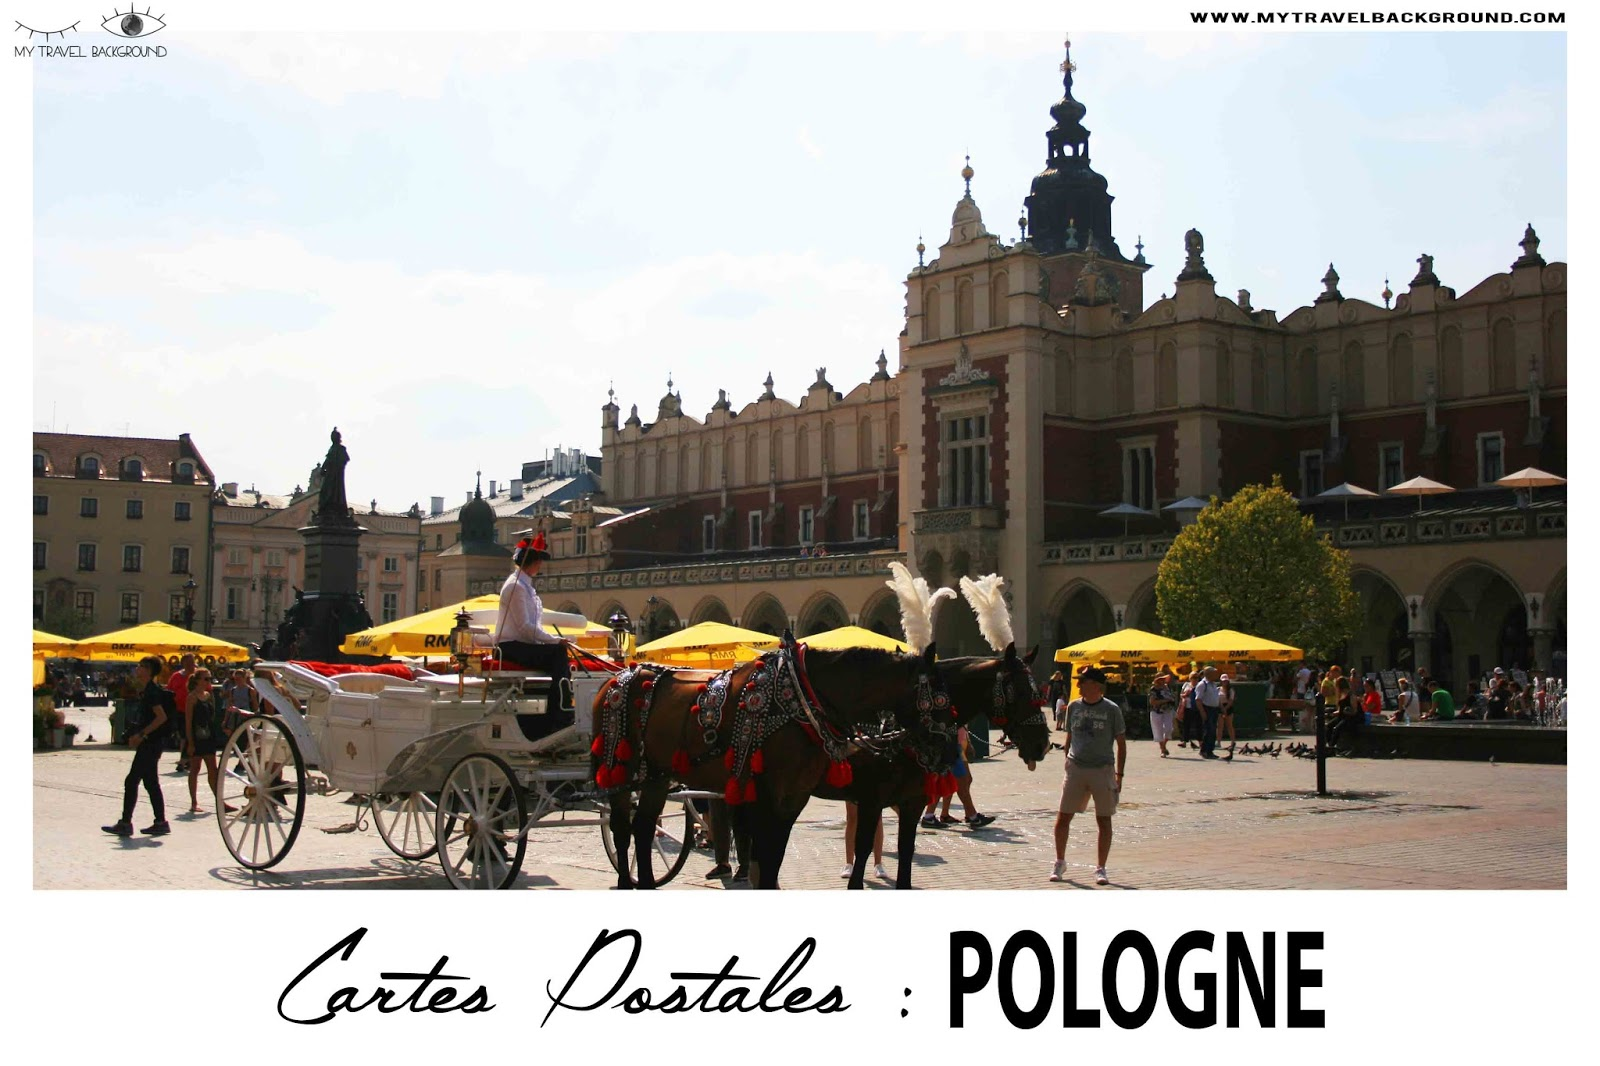 My Travel Background : cartes postales de Pologne